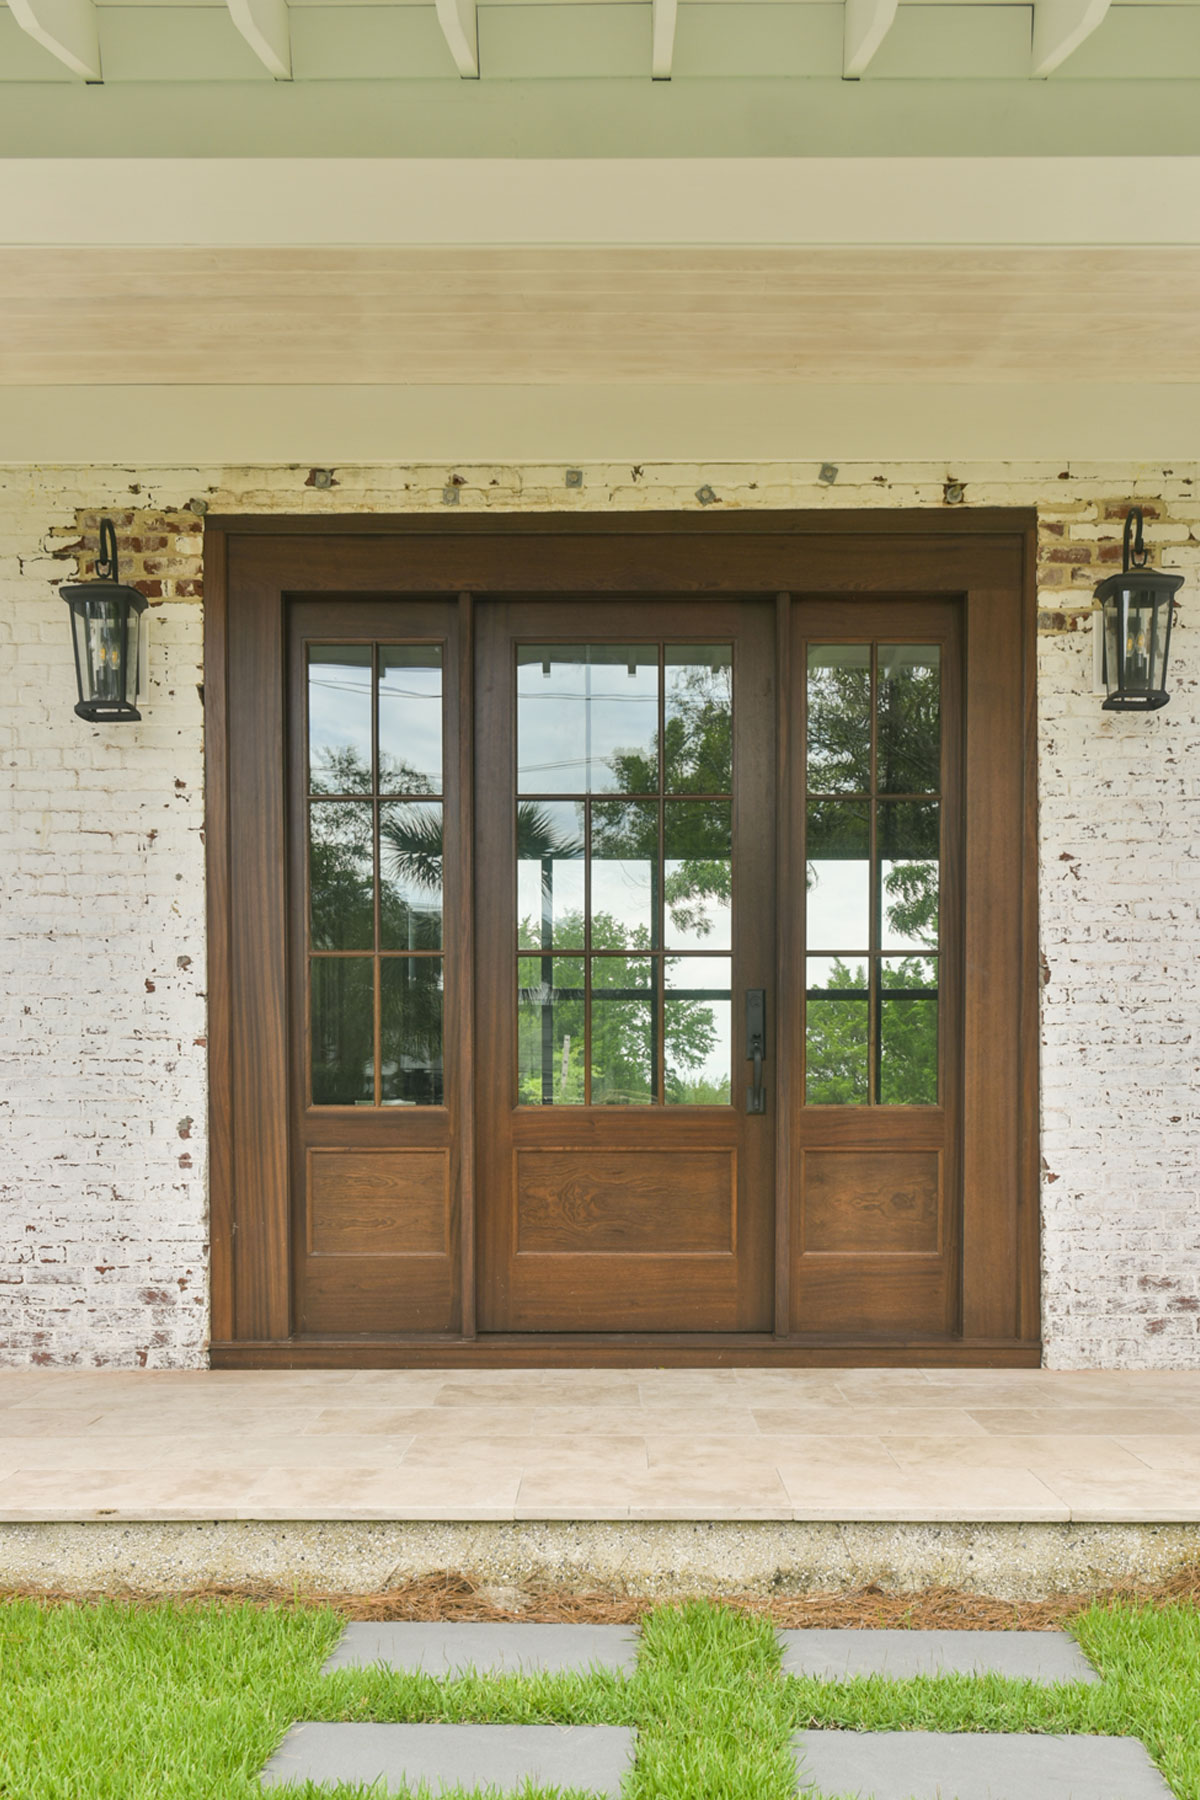 Wood stained front door with extra wide sidelights brings in natural light to the interior of the home